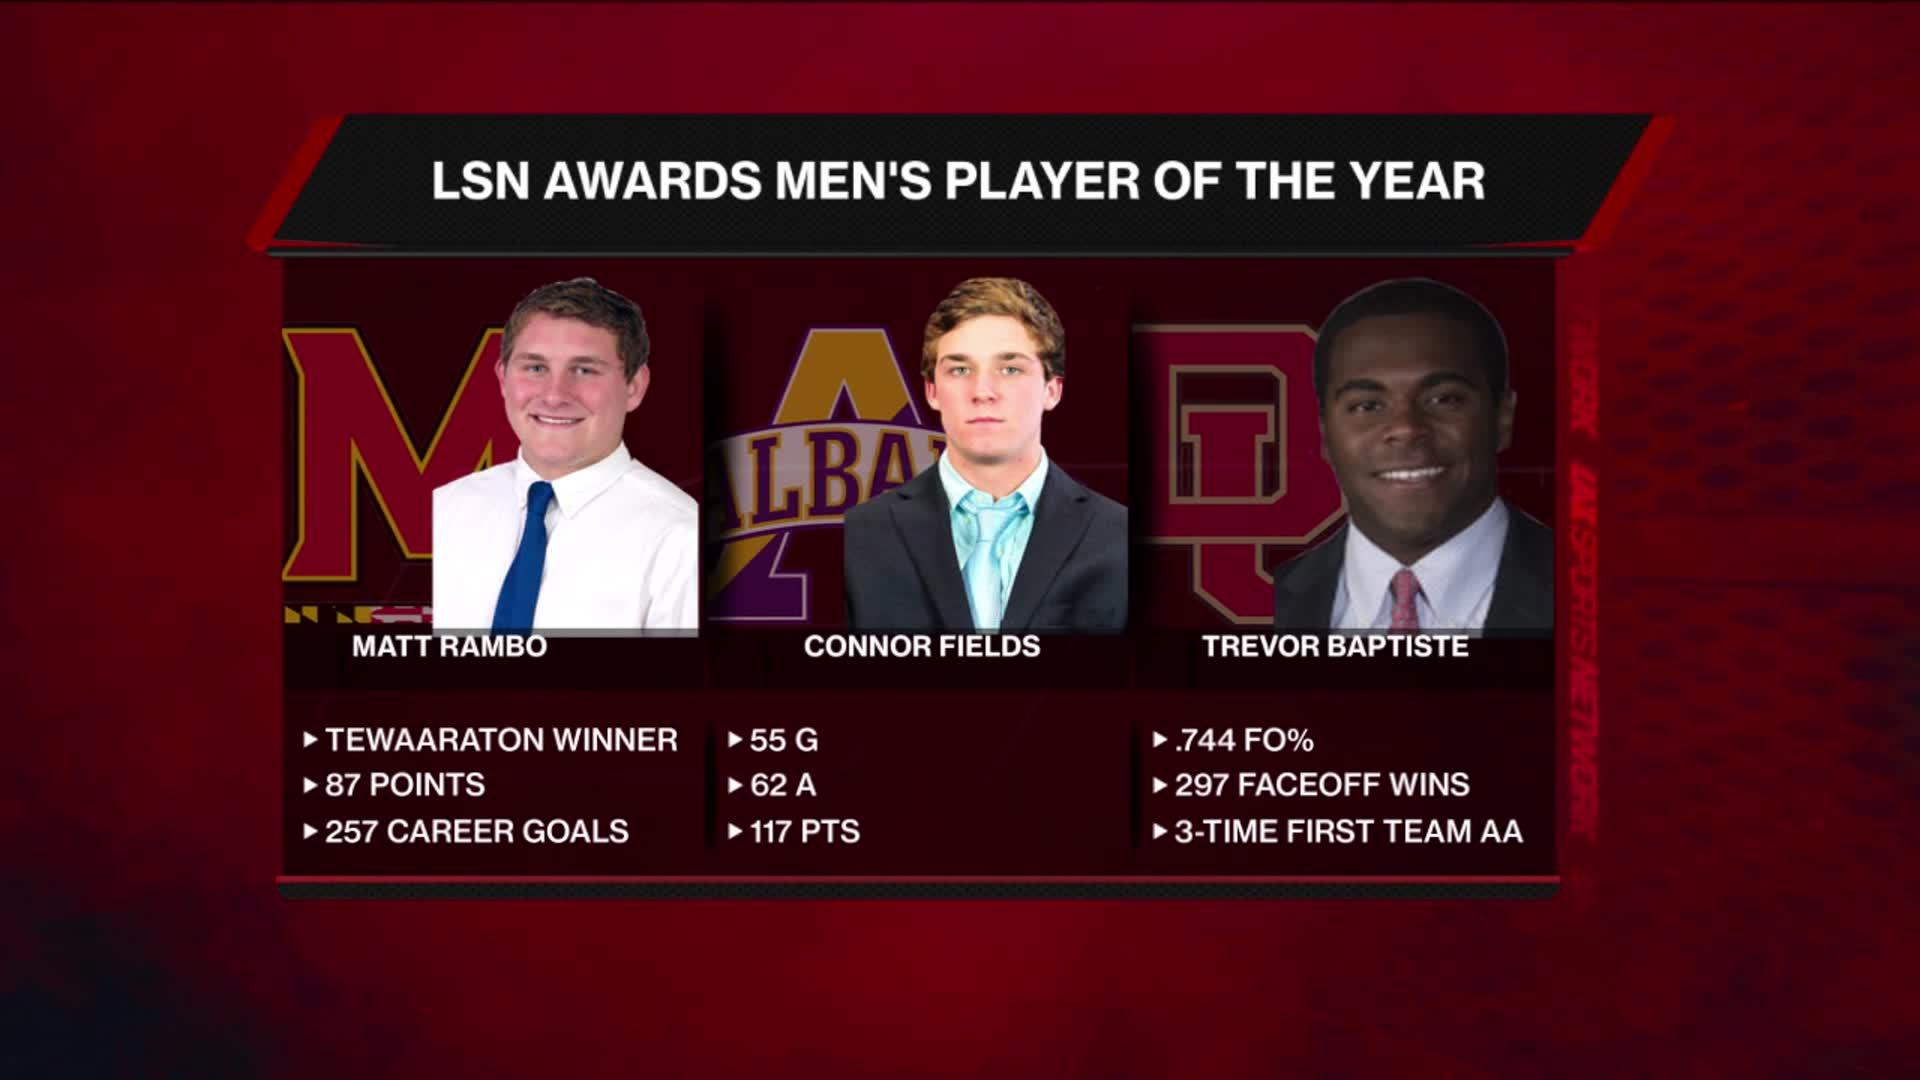 2017 LSN Awards: NCAA Men's Player of the Year